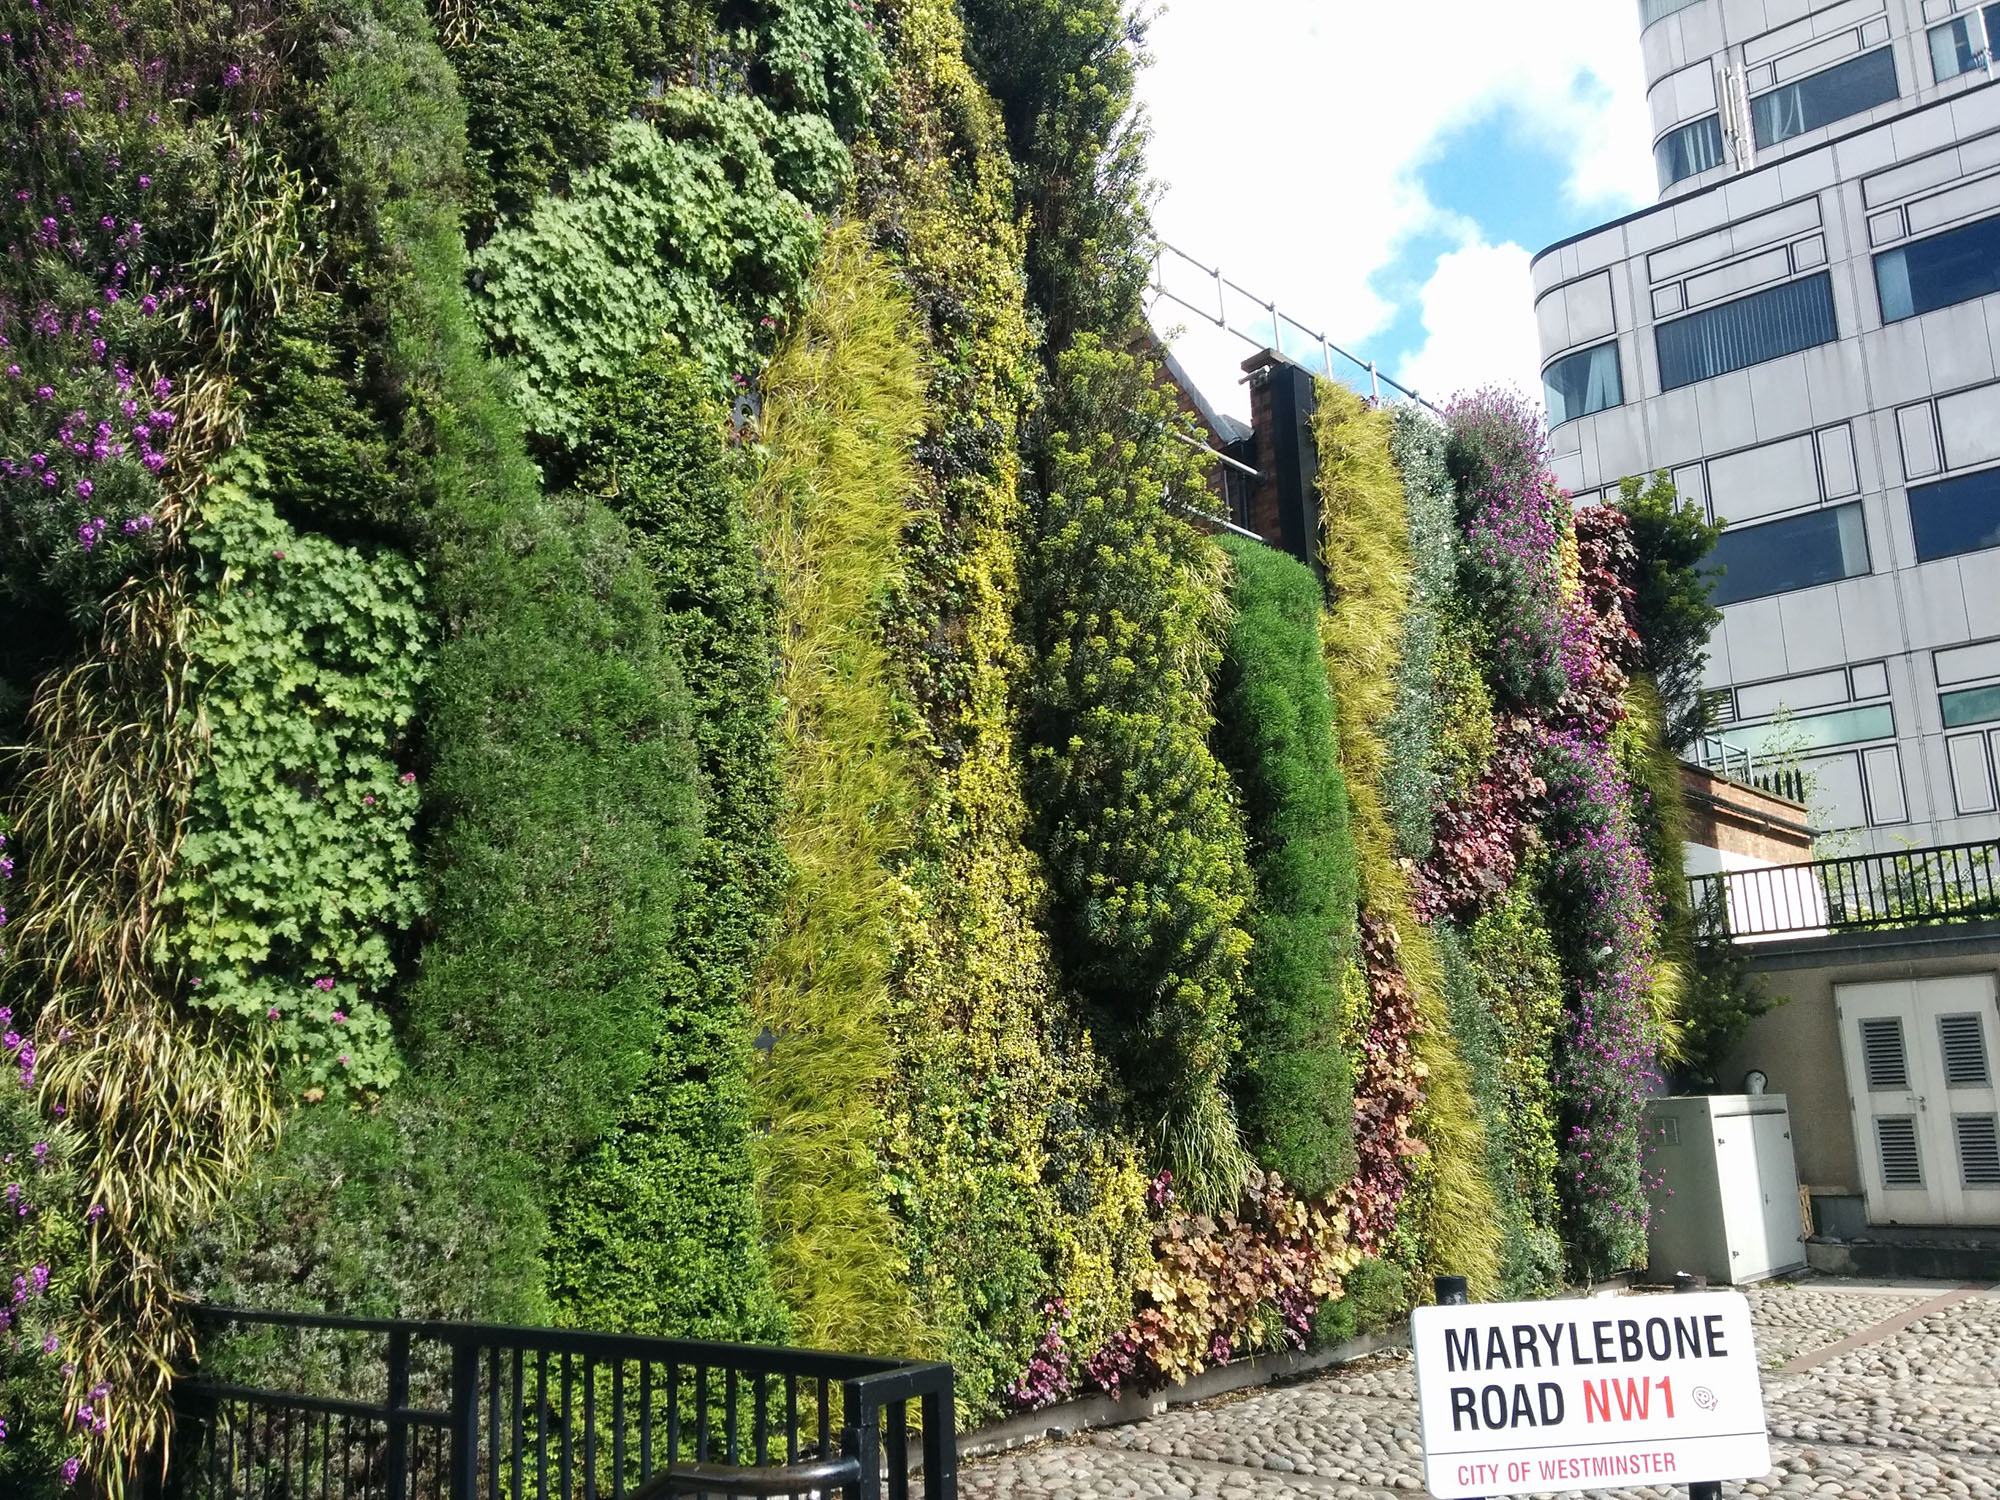 Colorful Eco wall with diverse plants in London.